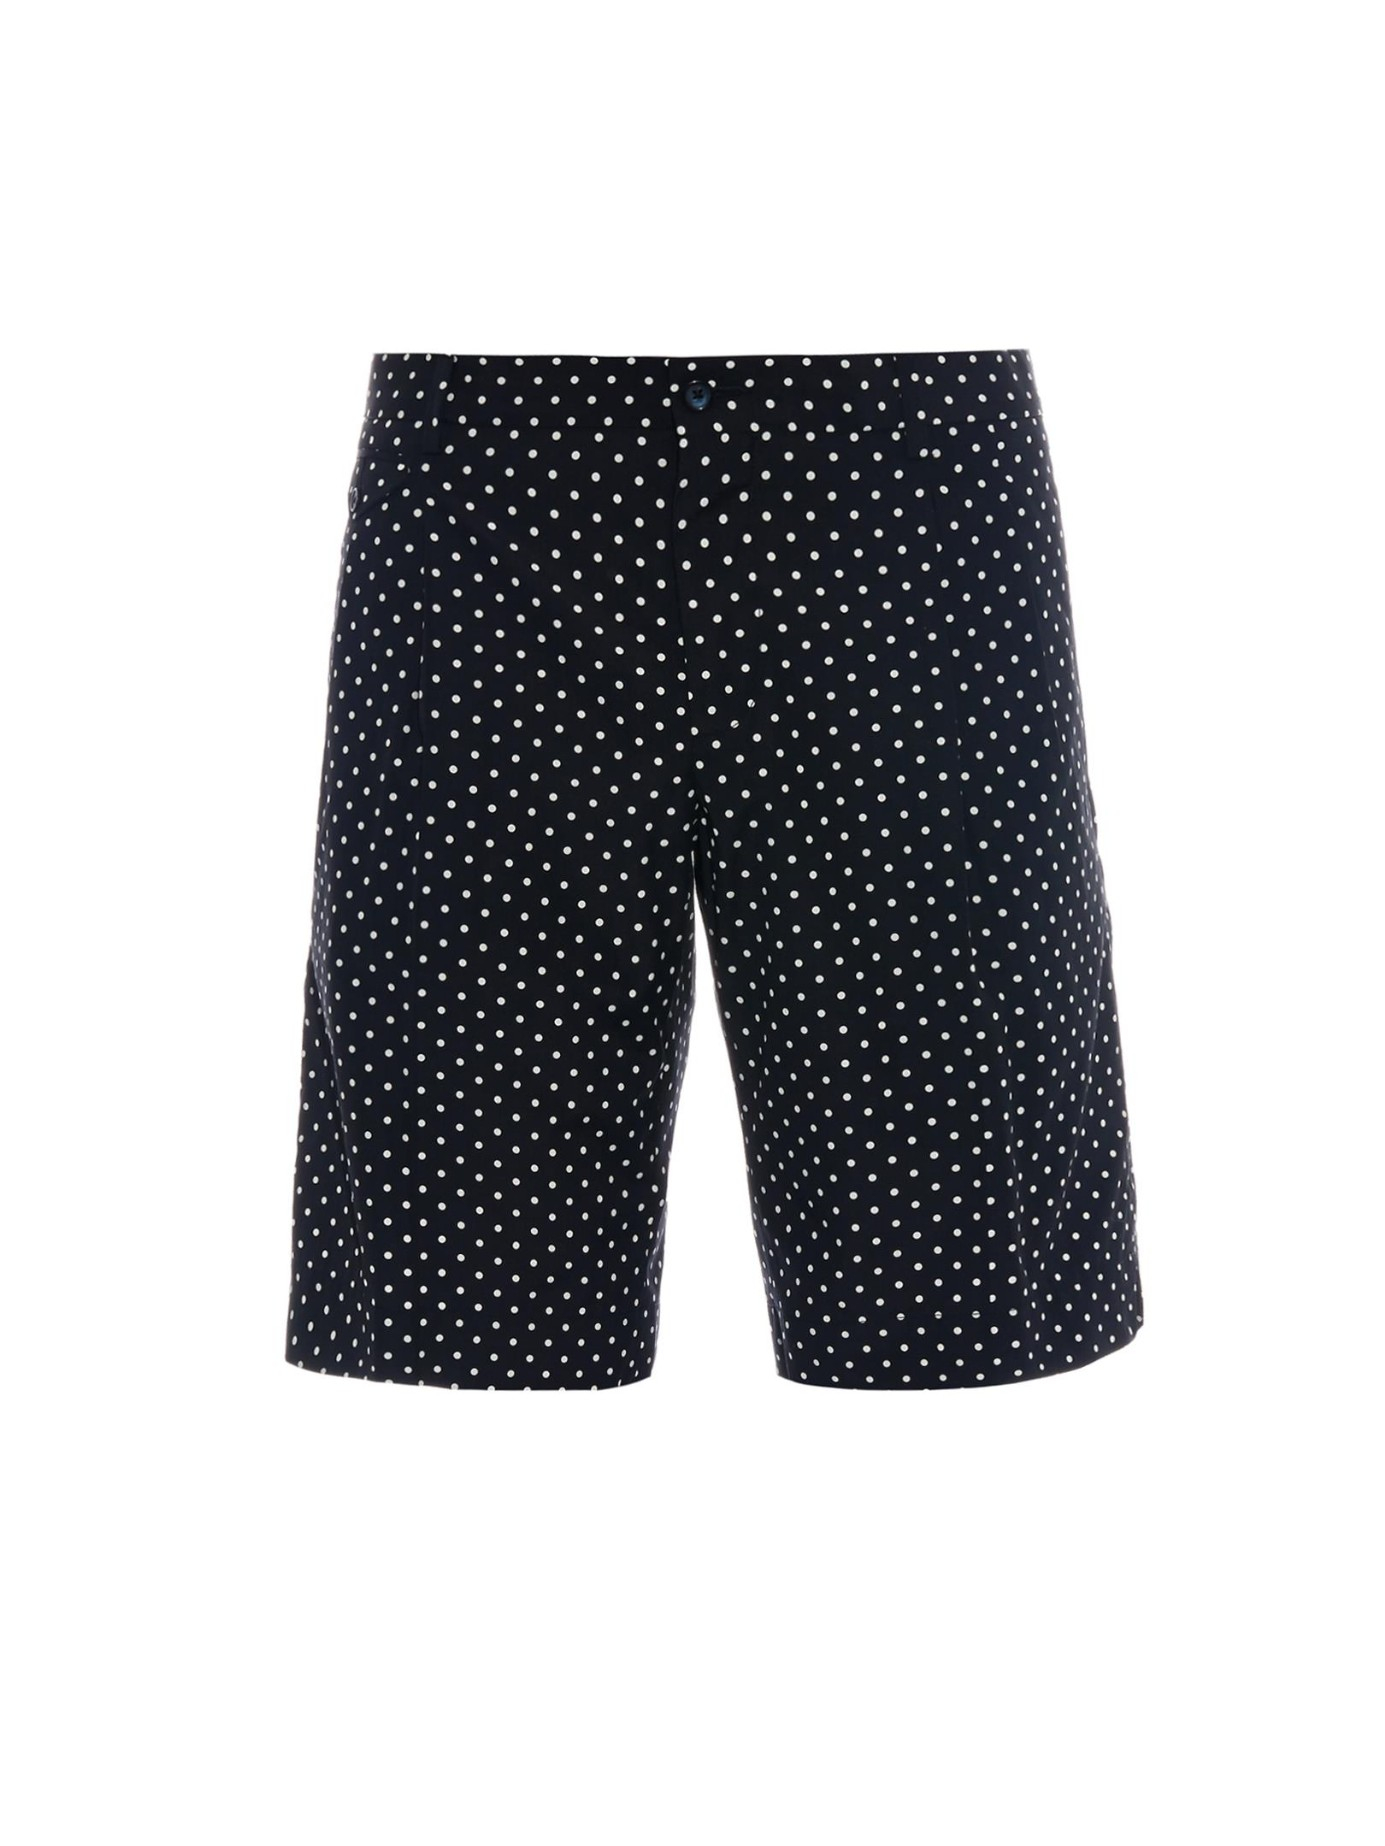 Find mens polka dot boxers at ShopStyle. Shop the latest collection of mens polka dot boxers from the most popular stores - all in one place.